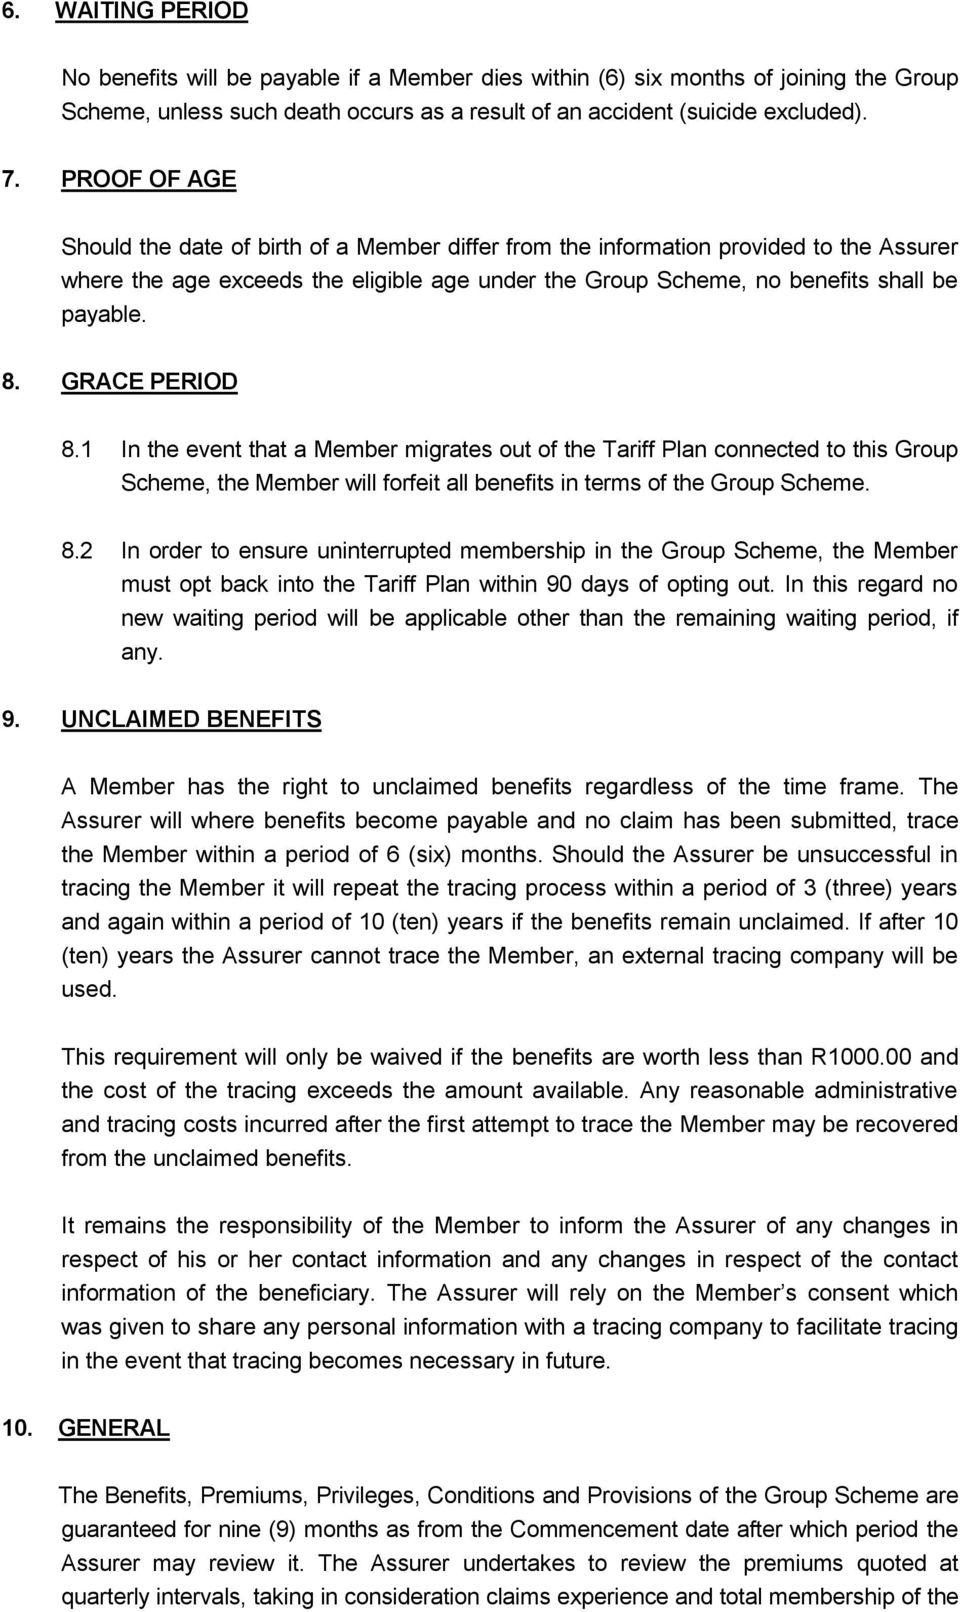 GRACE PERIOD 8.1 In the event that a Member migrates out of the Tariff Plan connected to this Group Scheme, the Member will forfeit all benefits in terms of the Group Scheme. 8.2 In order to ensure uninterrupted membership in the Group Scheme, the Member must opt back into the Tariff Plan within 90 days of opting out.